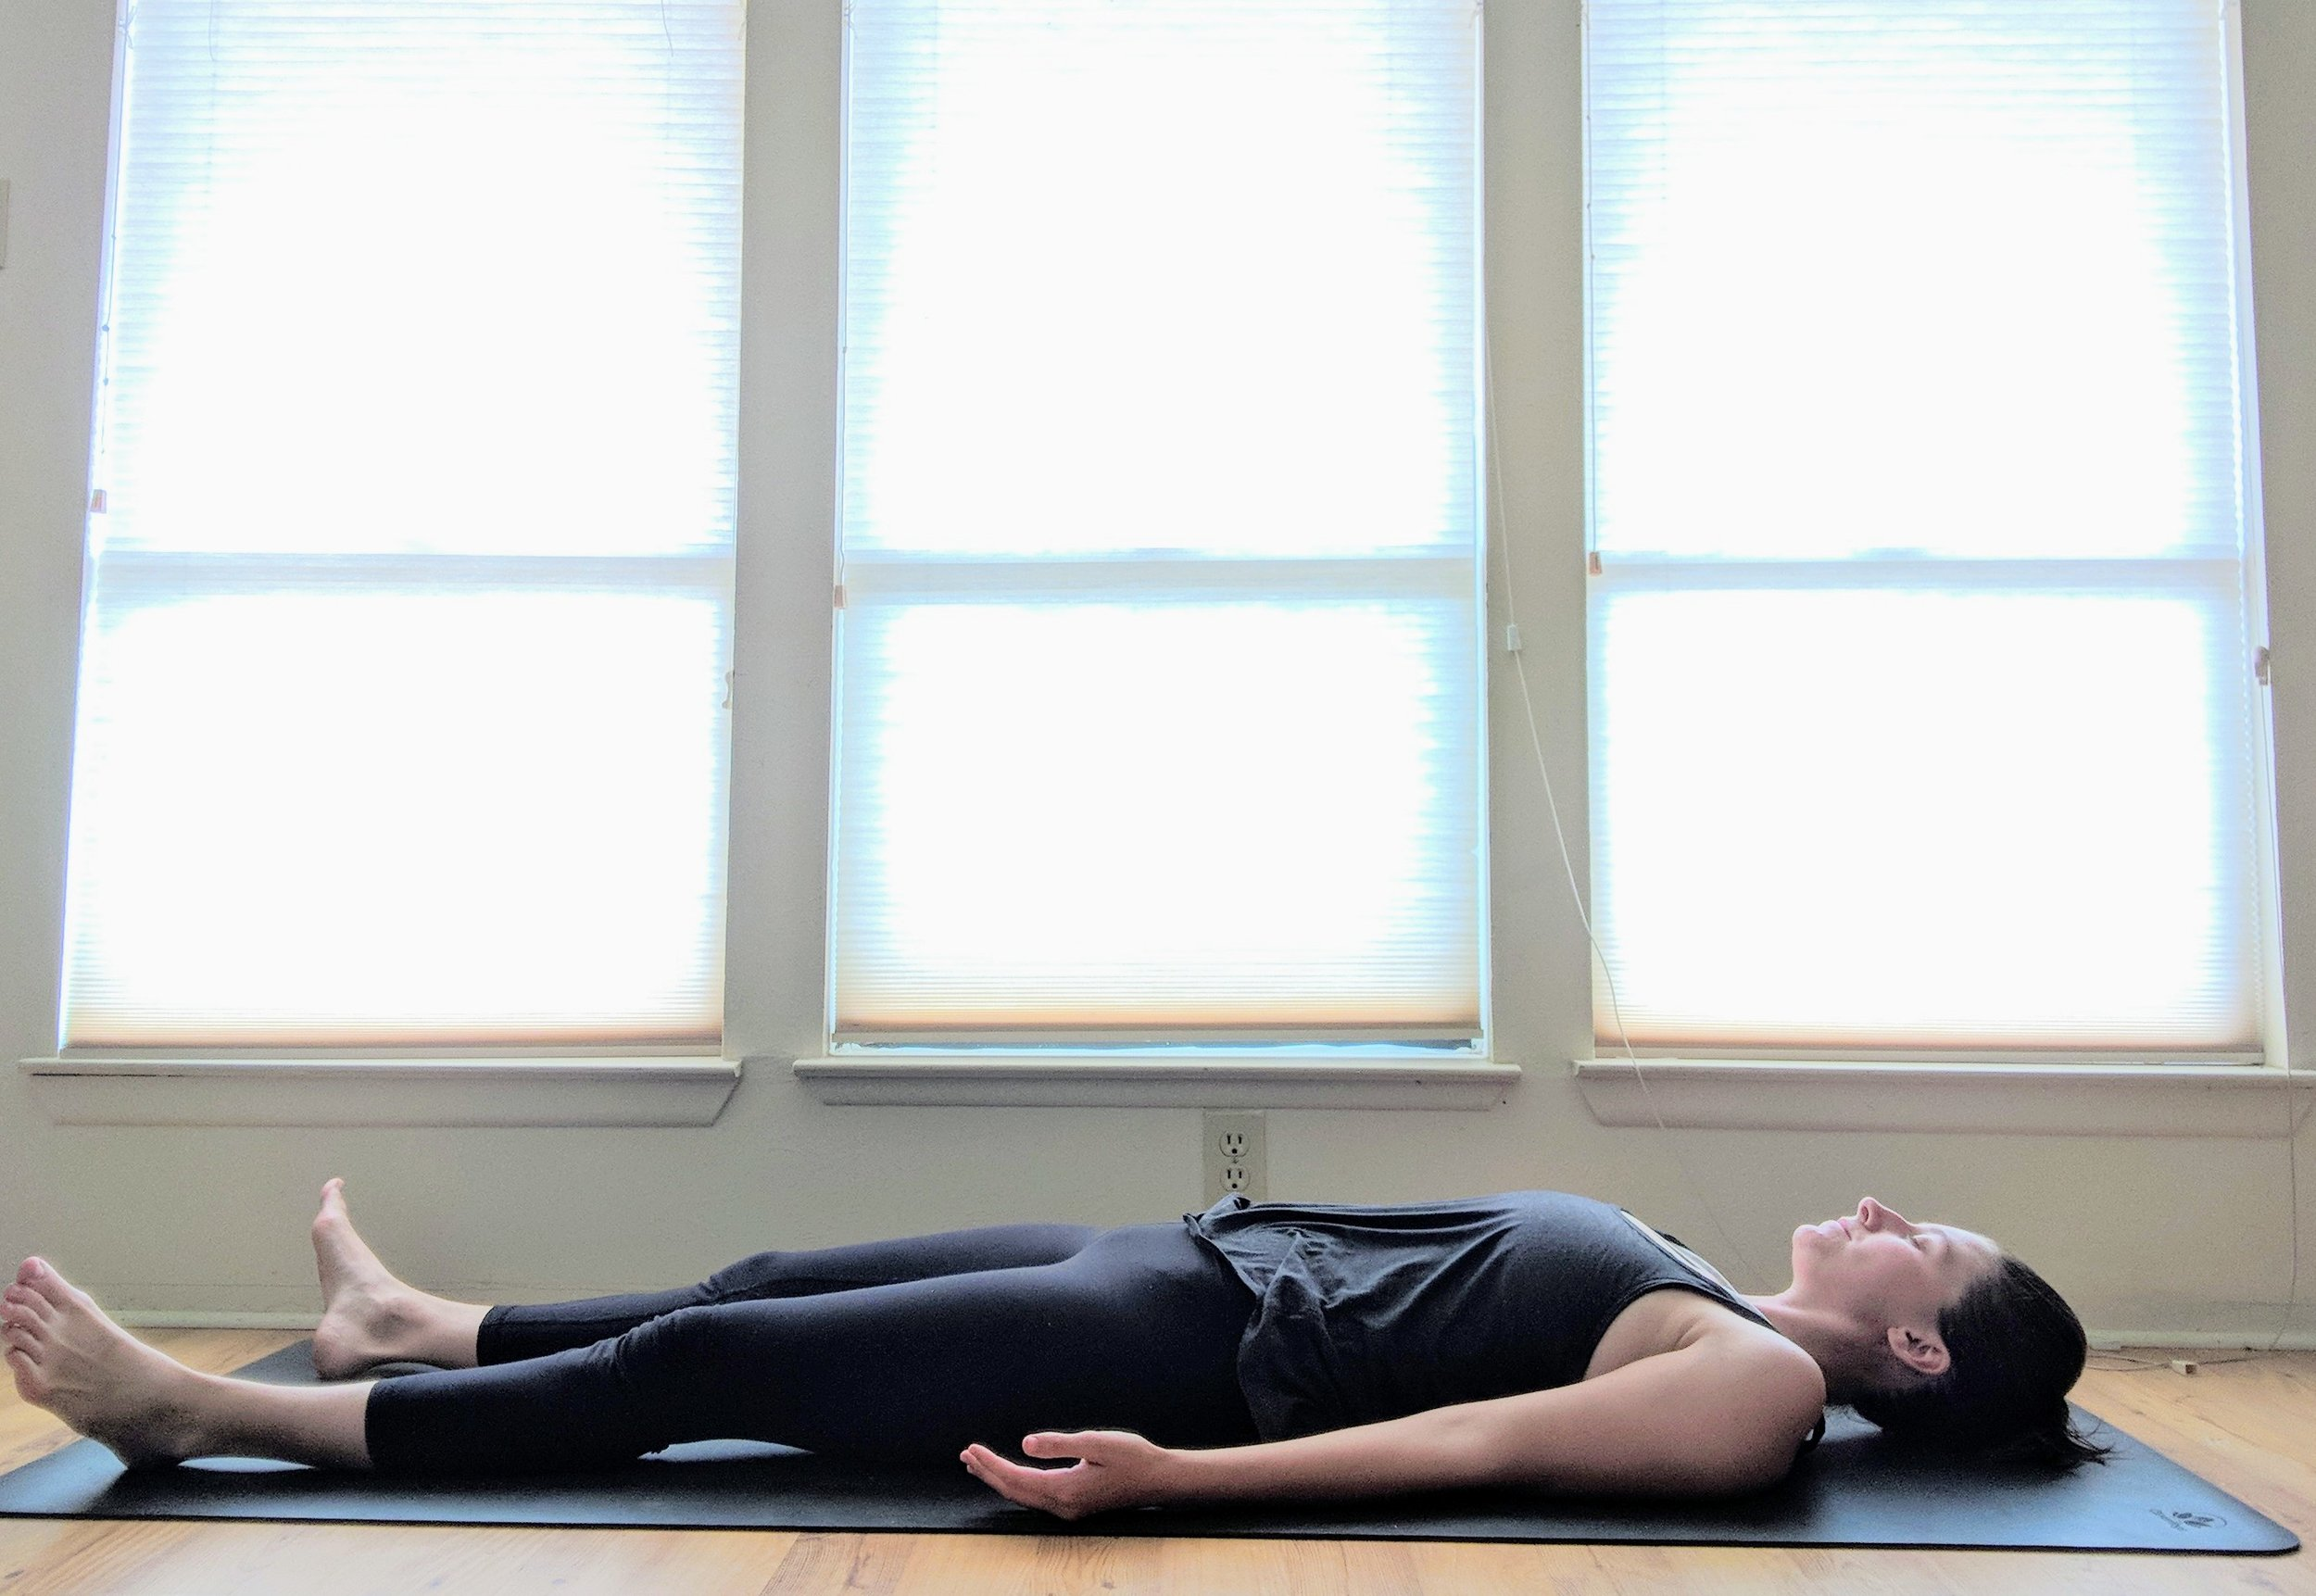 savasana - Lay down on your backRelax your entire bodyPalms can face upBring a pillow to your low back or under your kneesMODIFICATION - Legs up the wall is a good alternative if lying on your back is uncomfortable